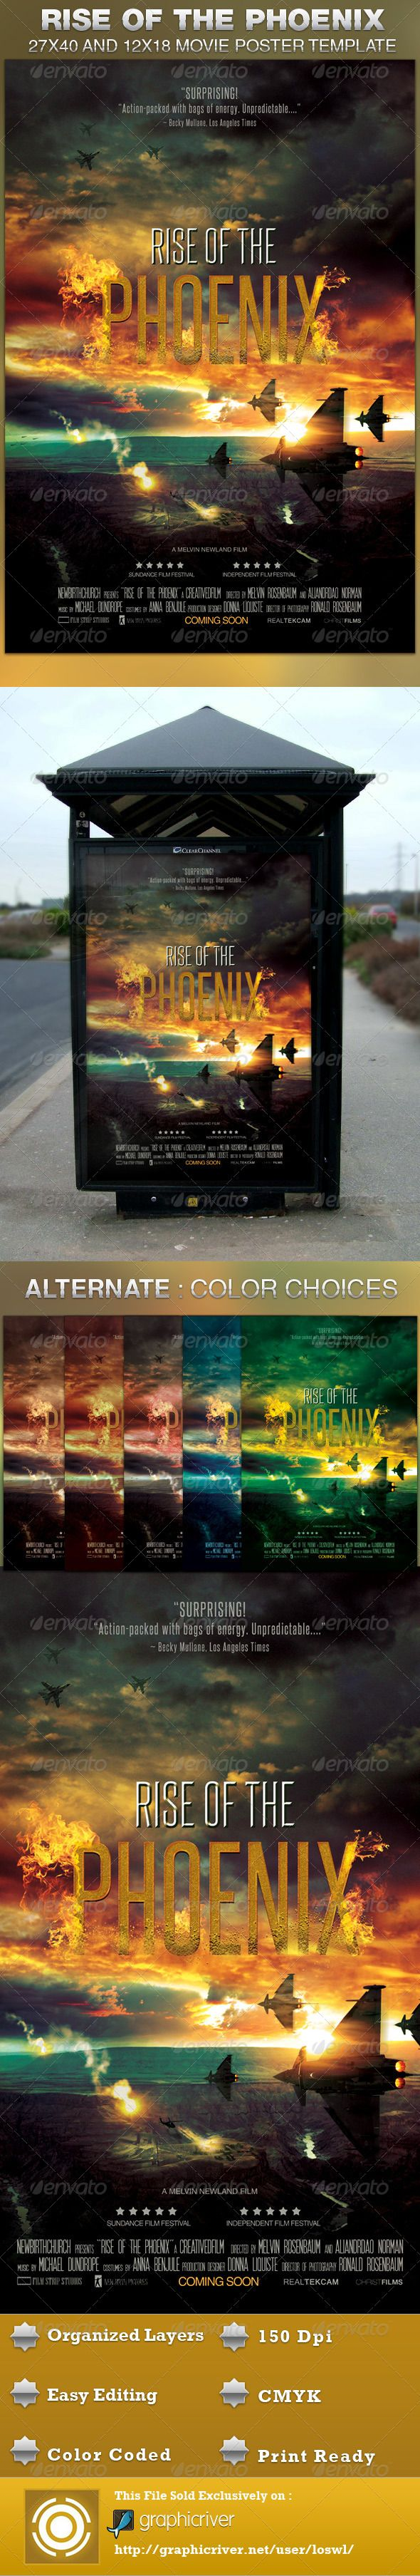 This Rise of the Phoenix Movie Poster Template is sold exclusively on graphicriver, it can be used for your movie promotion, event marketing, church movie night, sermon marketing etc. In this package you'll find 2 Photoshop files. All text and graphics in the file are editable, color coded and simple to edit. The file also has 10 one-click color options. $6.00